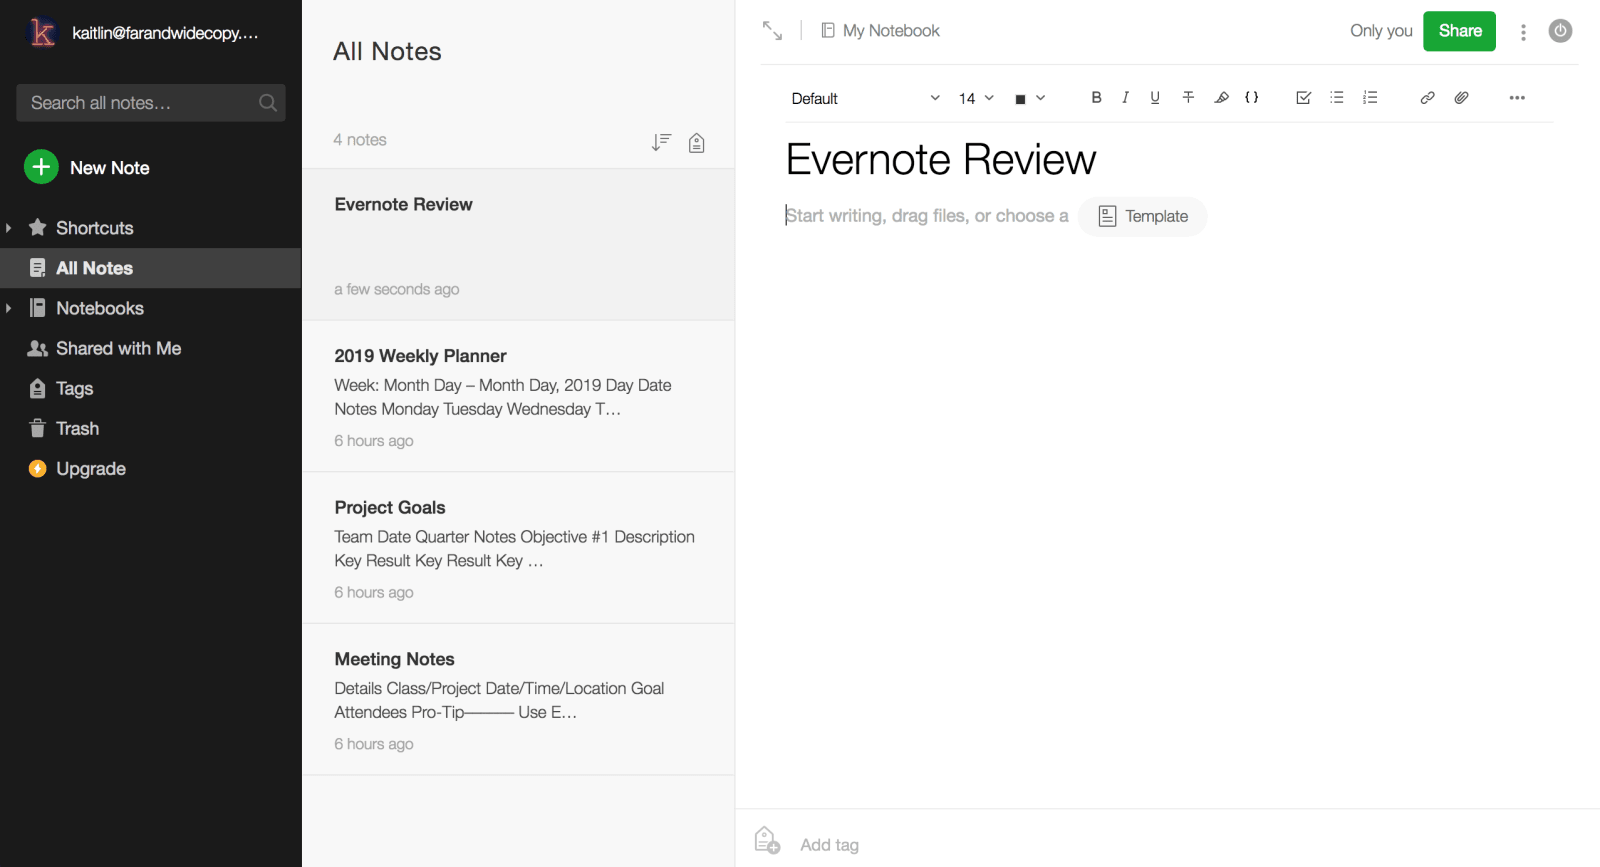 Evernote Review Note Creation